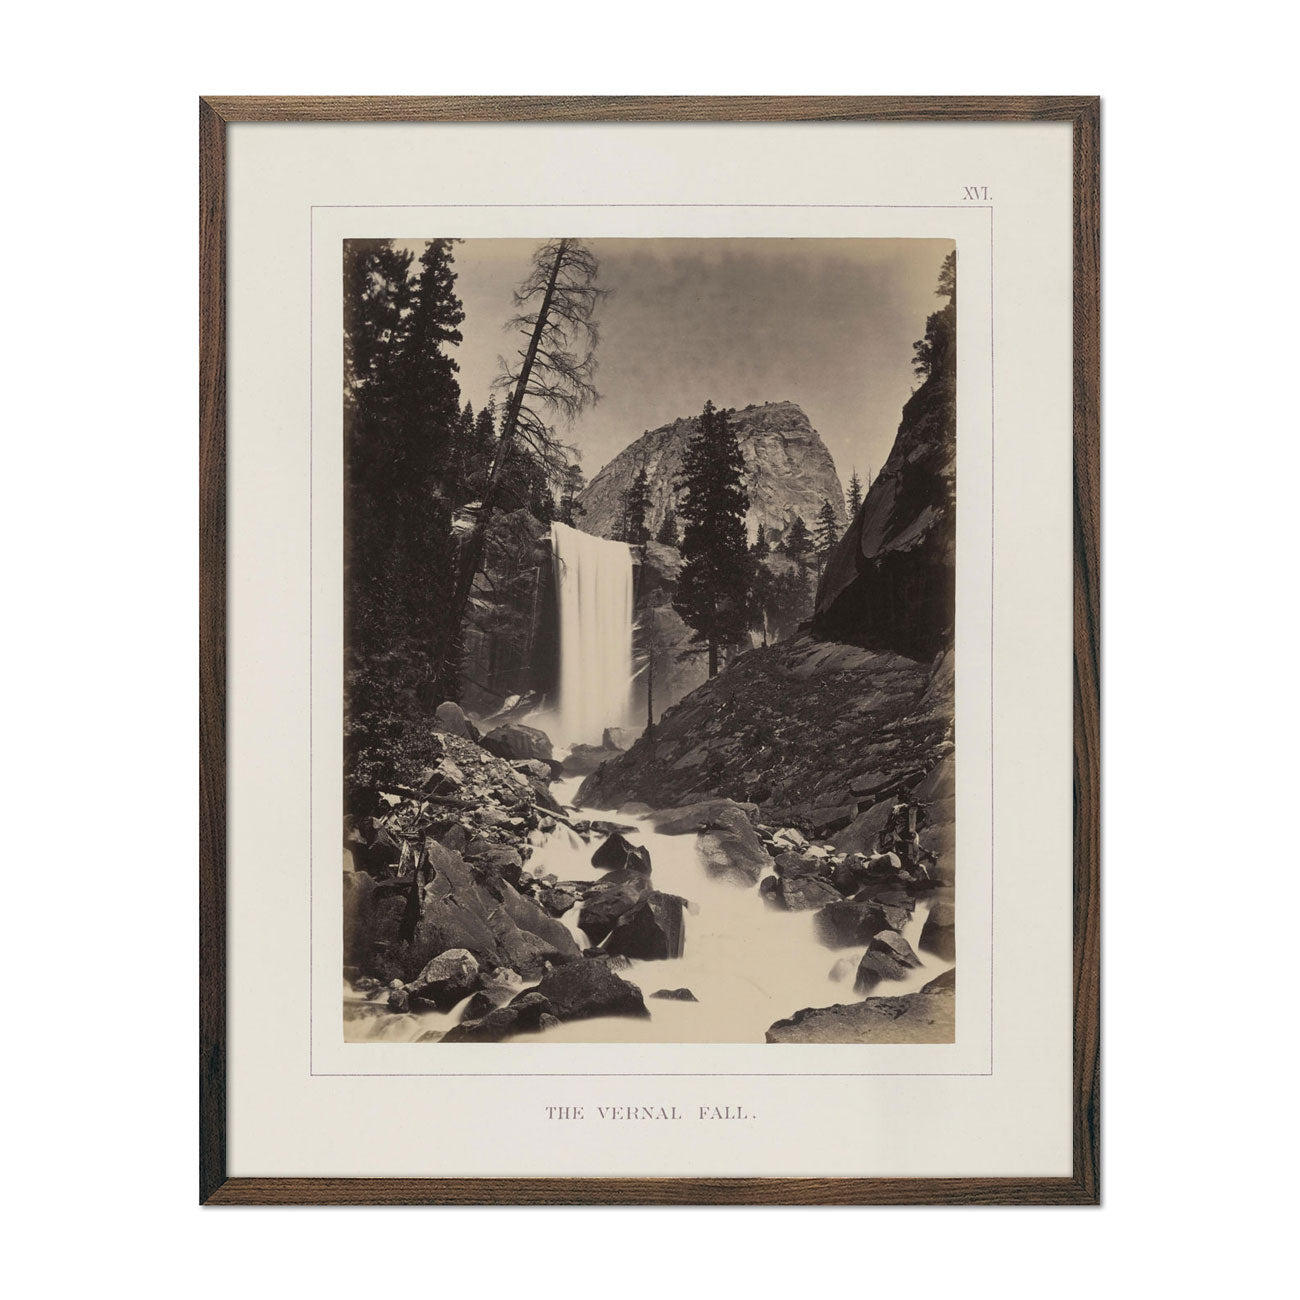 Photograph of Vernal Fall